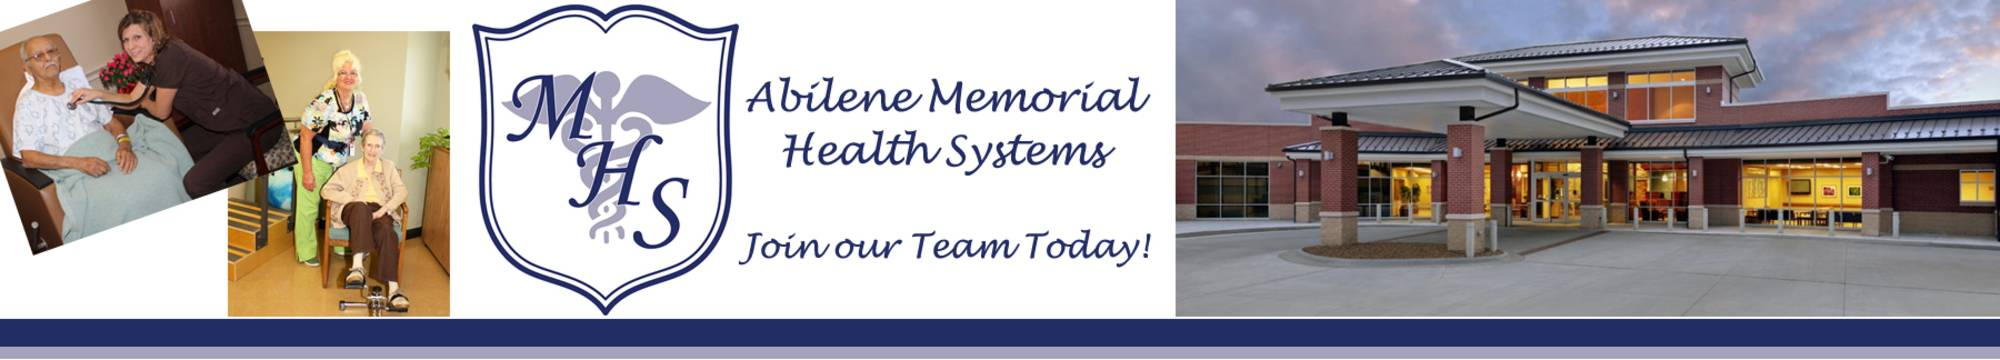 Abilene Memorial Health Systems